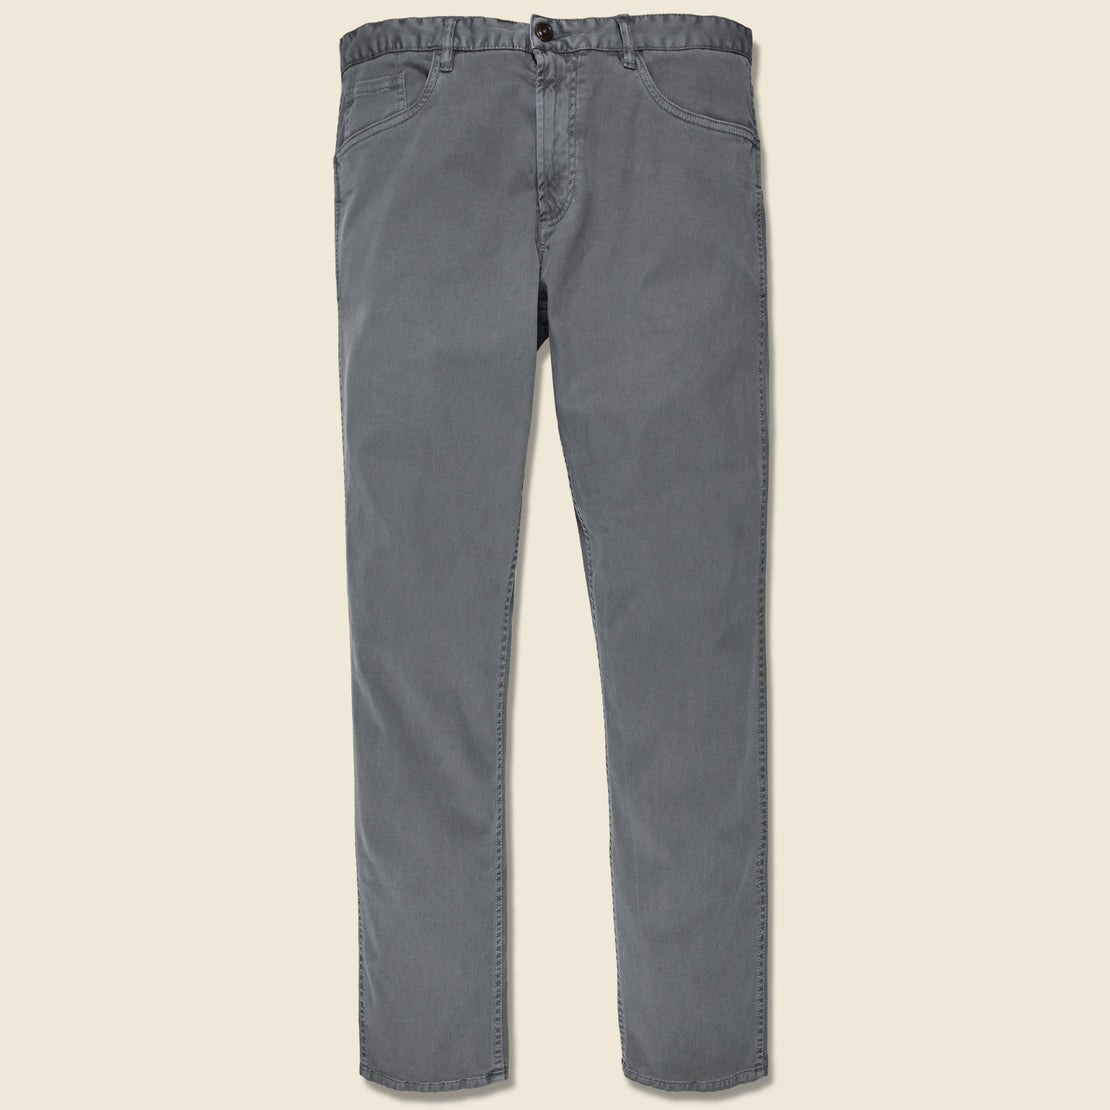 Faherty Comfort Twill Jean - Rugged Grey